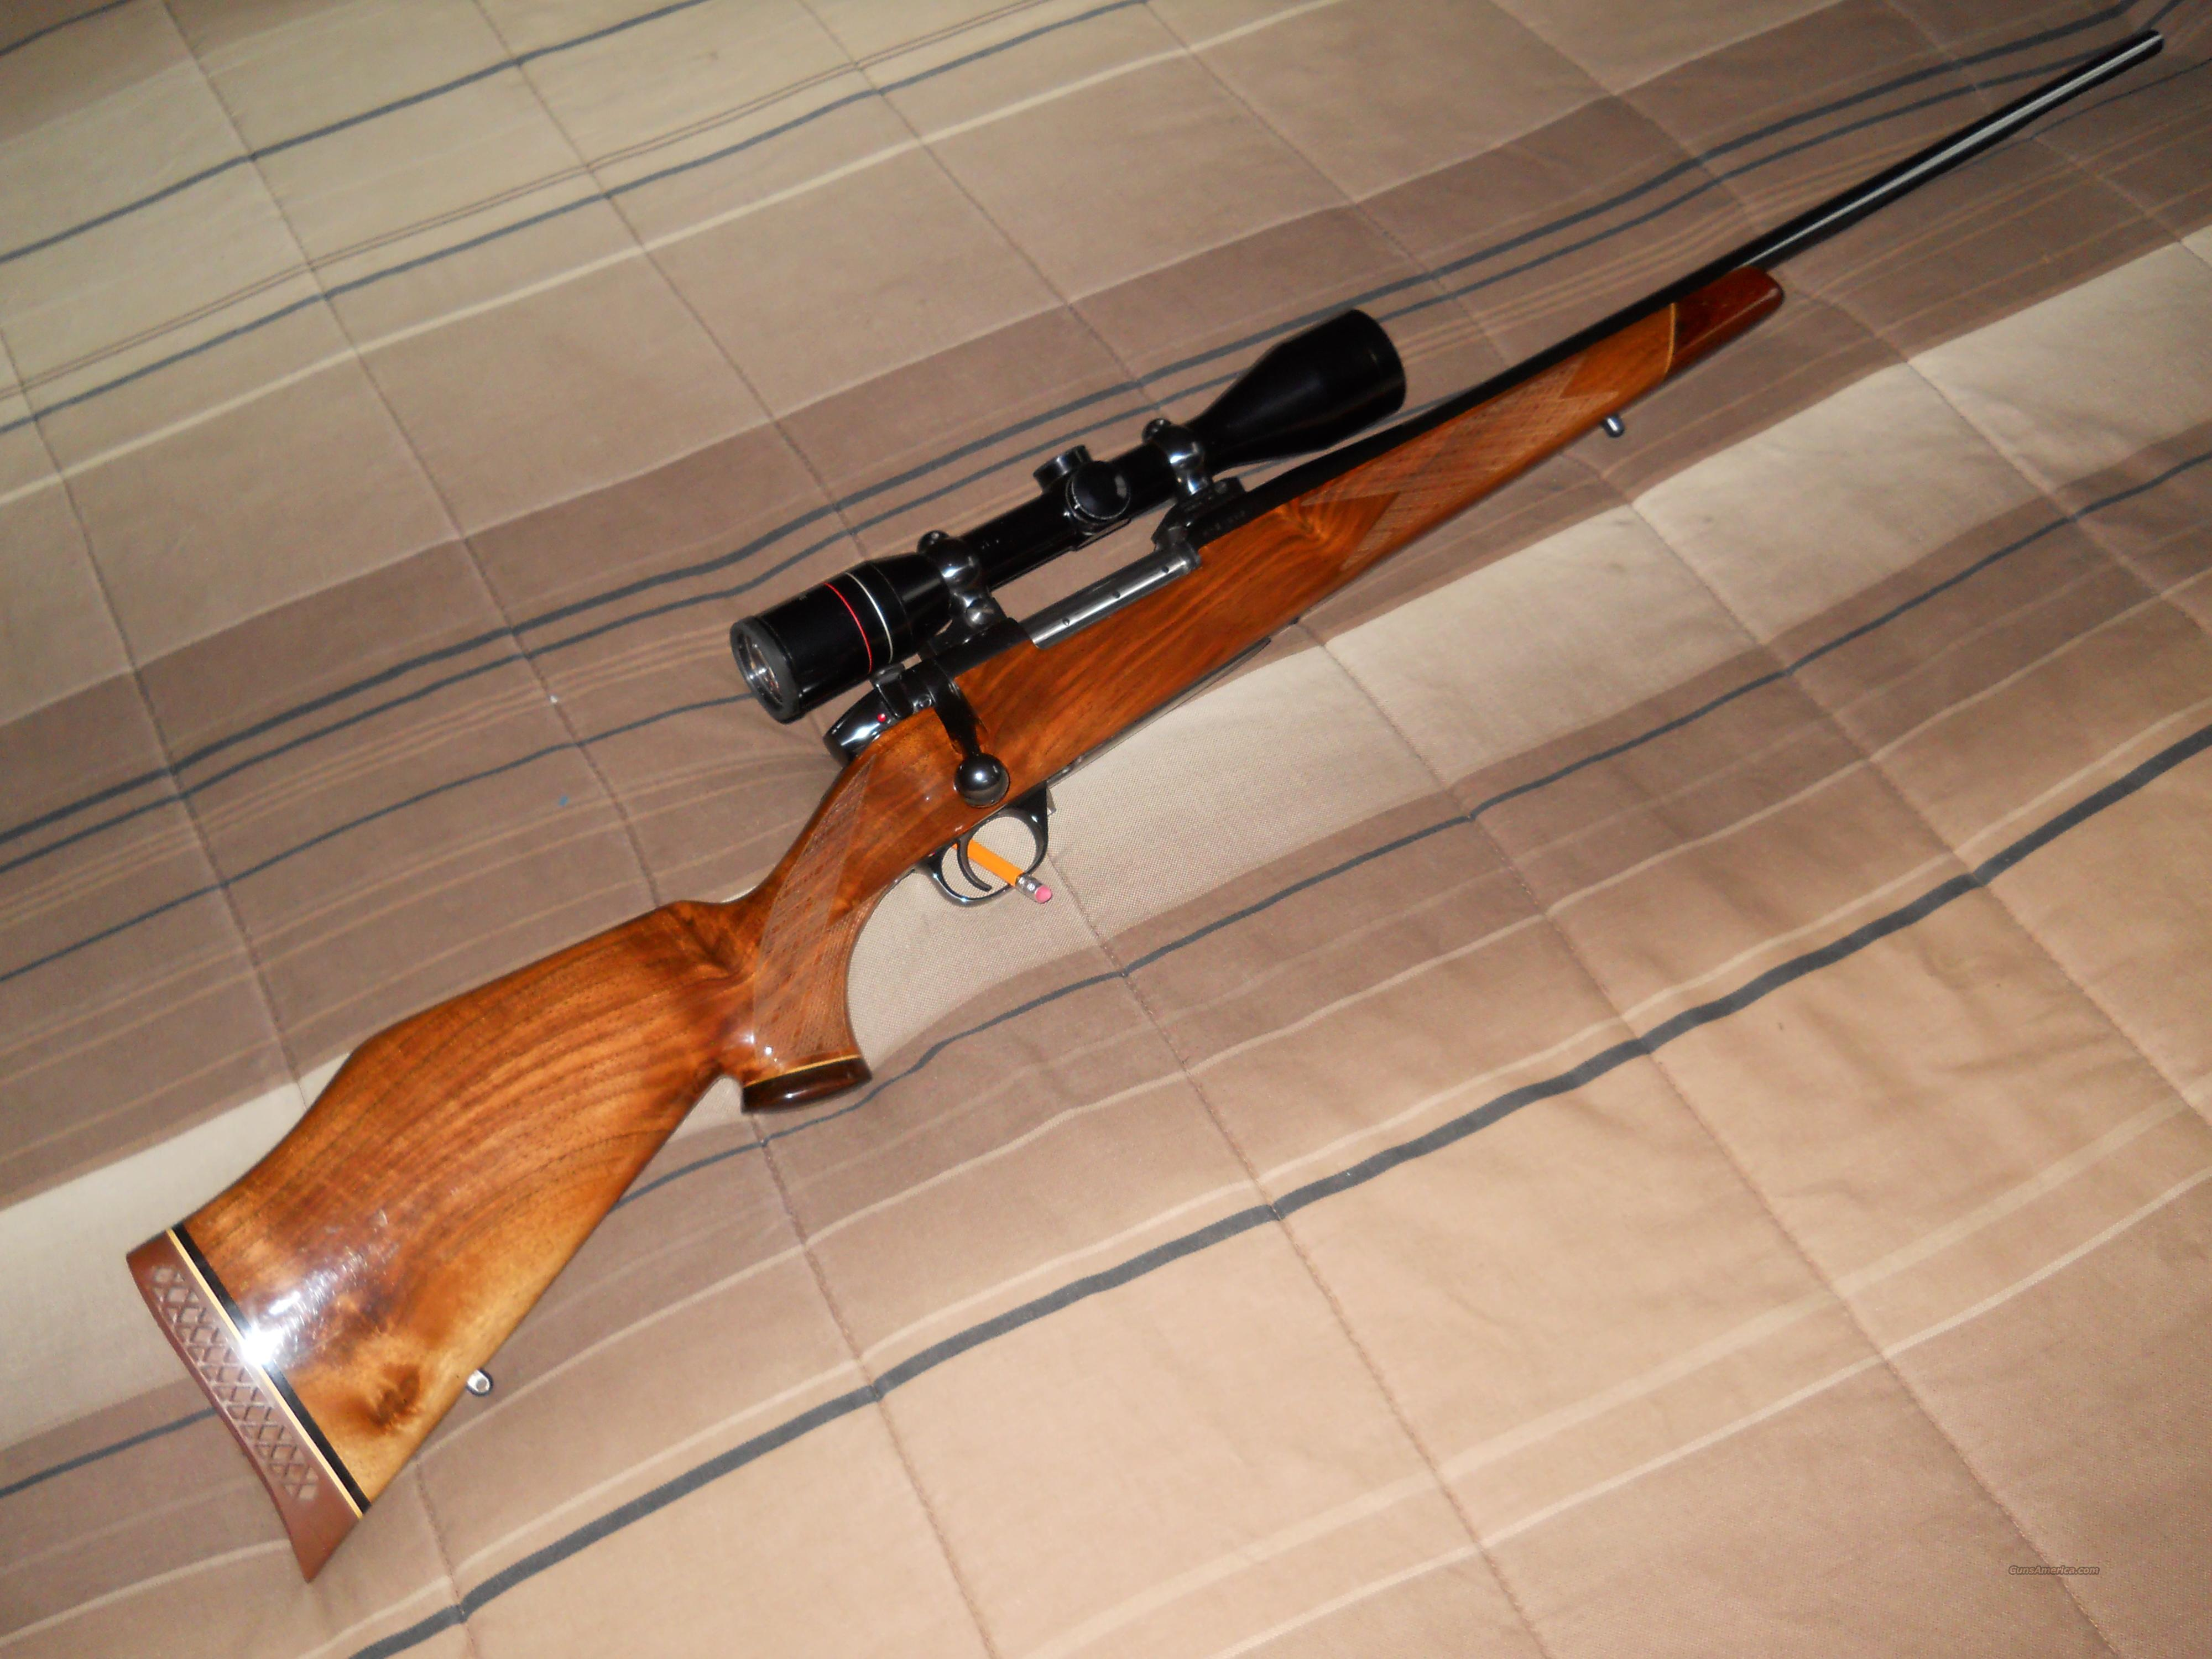 Weatherby mk V .300 mag. w/ Rare 4x44 weatherby scope.  Guns > Rifles > Weatherby Rifles > Sporting